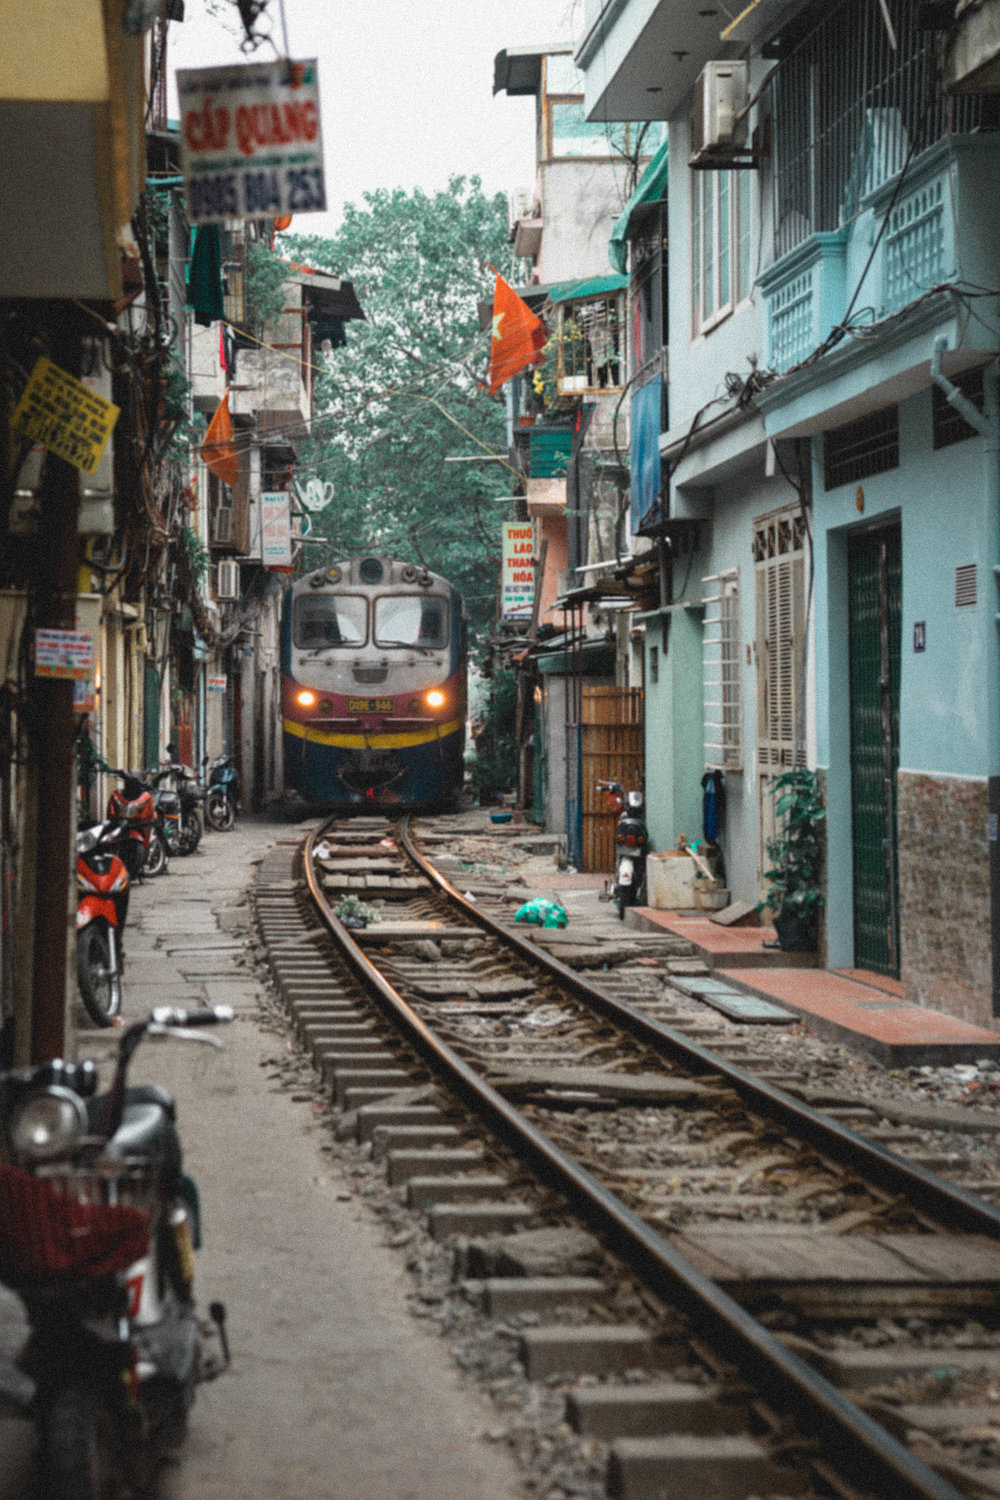 Residential train streets of Hanoi